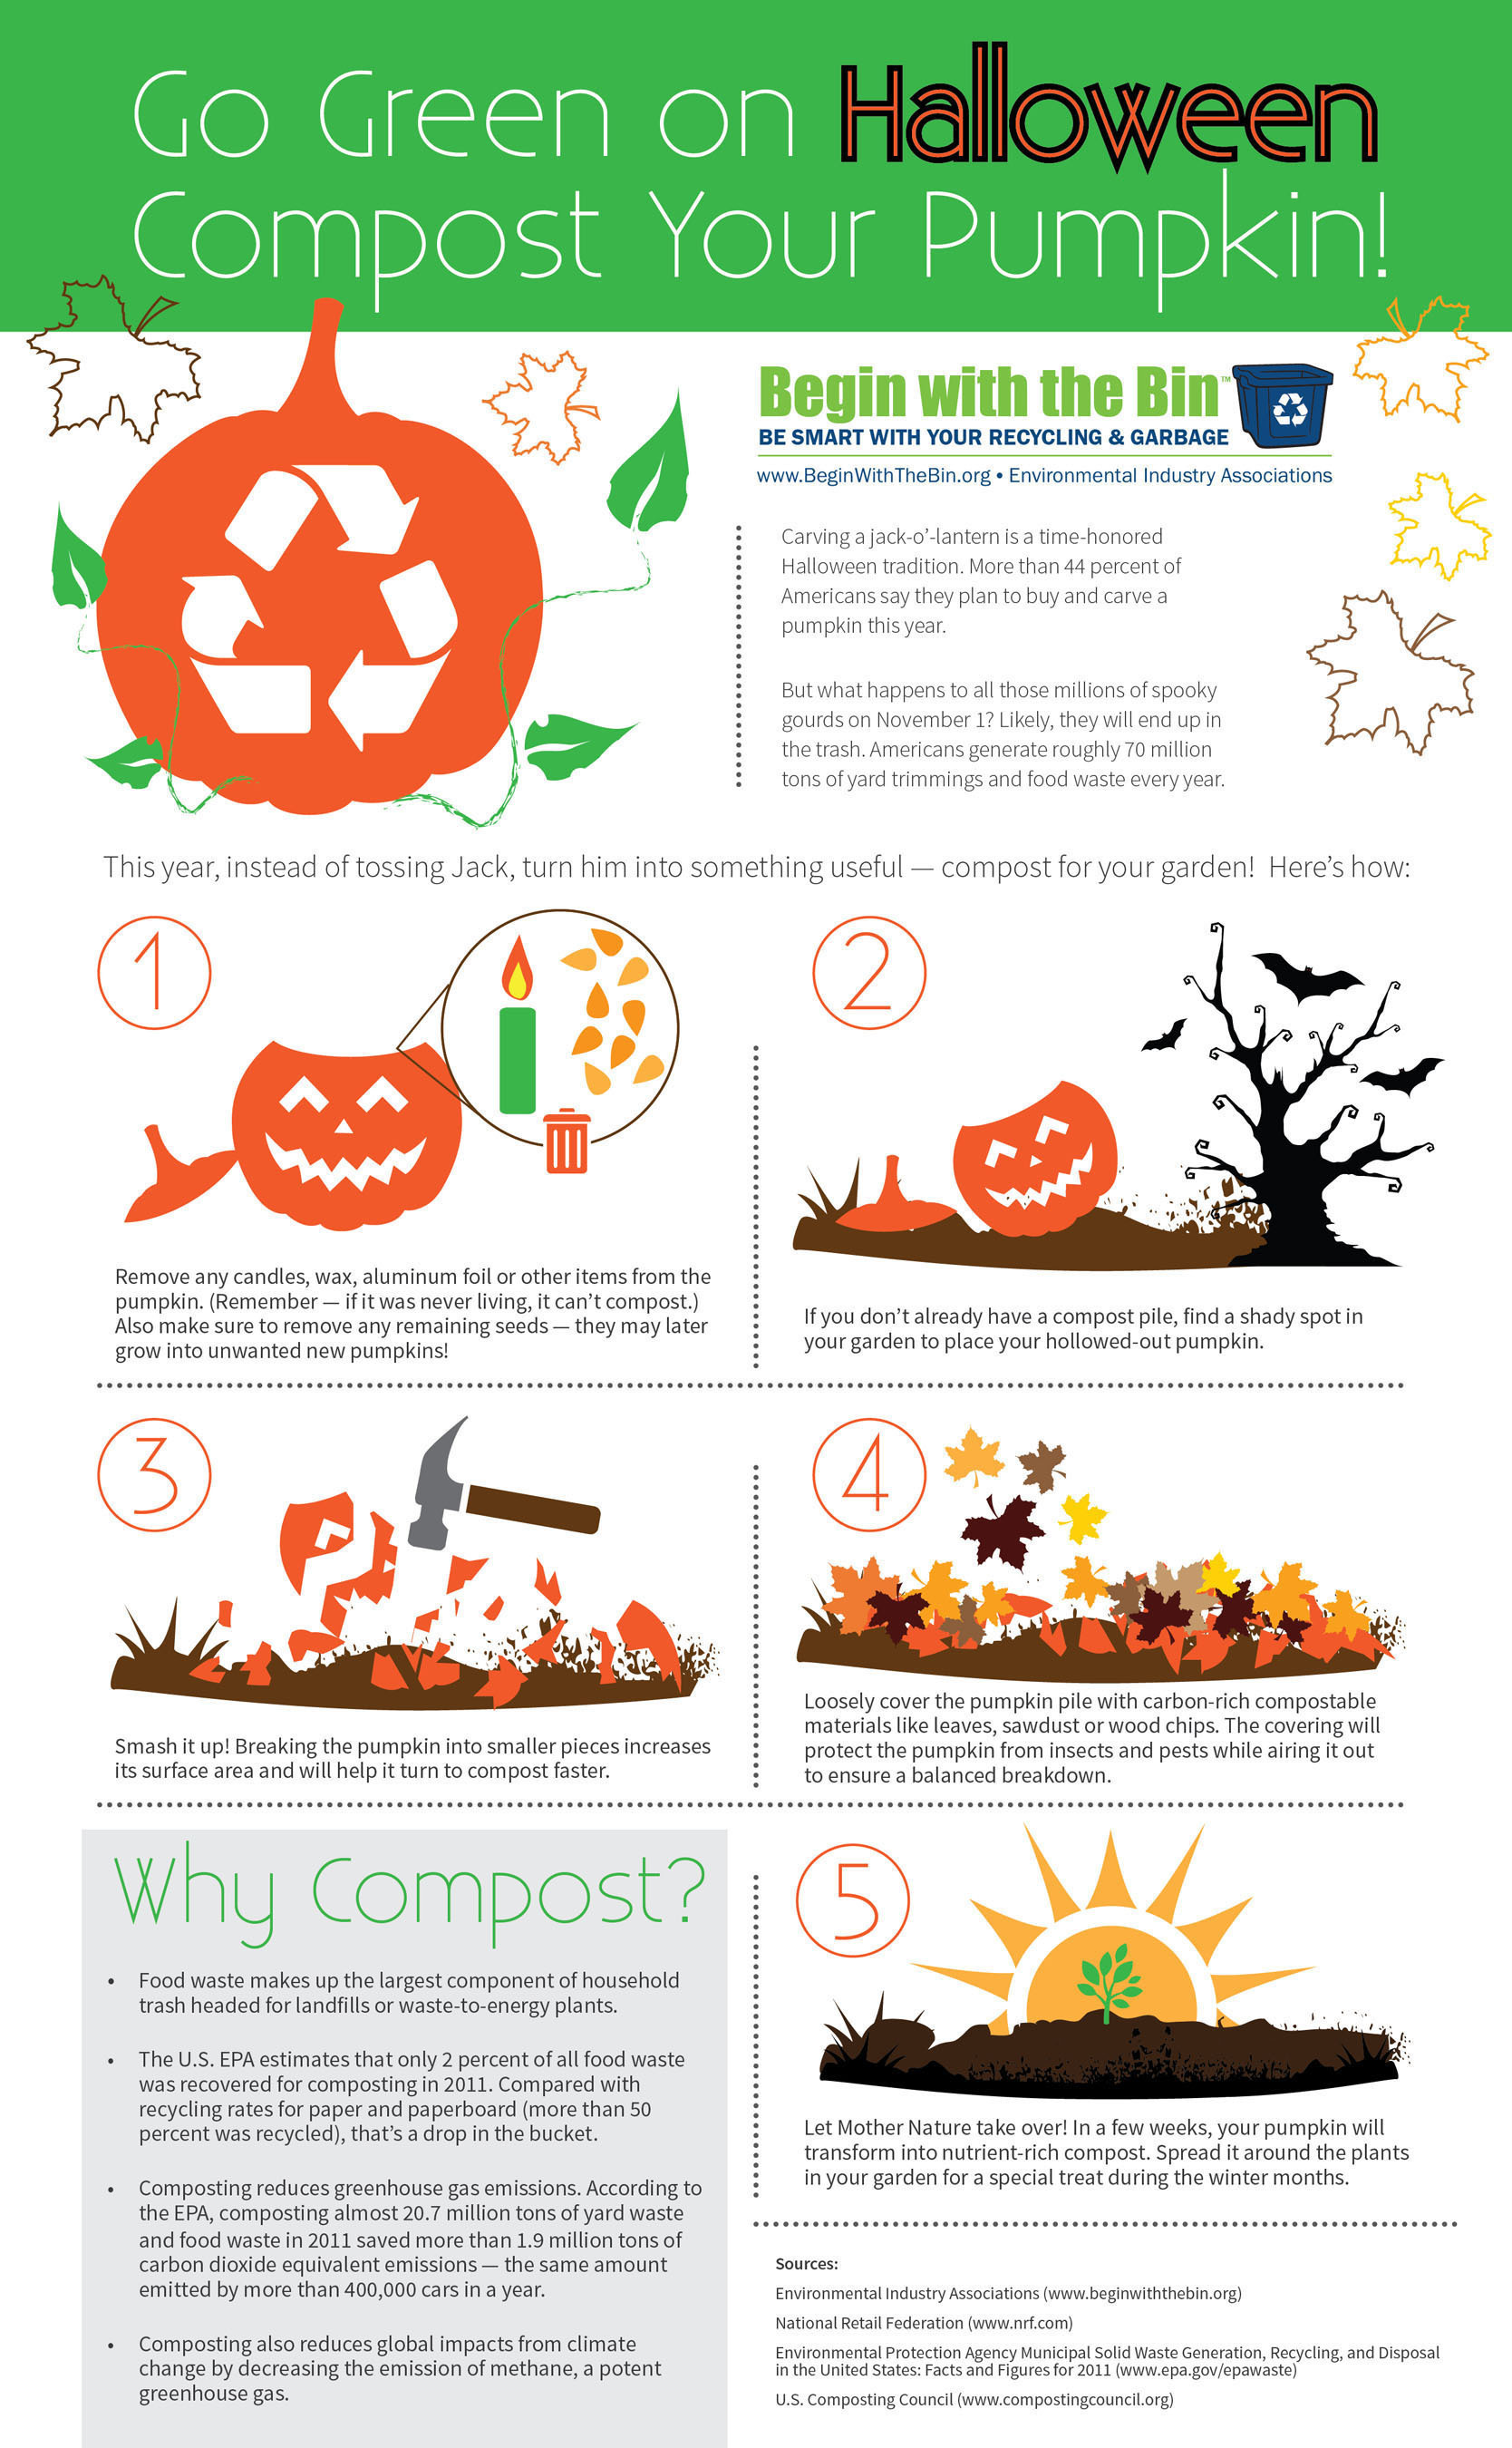 Nearly 44 percent of Americans will carve a jack-o'-lantern this Halloween, but how will they dispose of ...